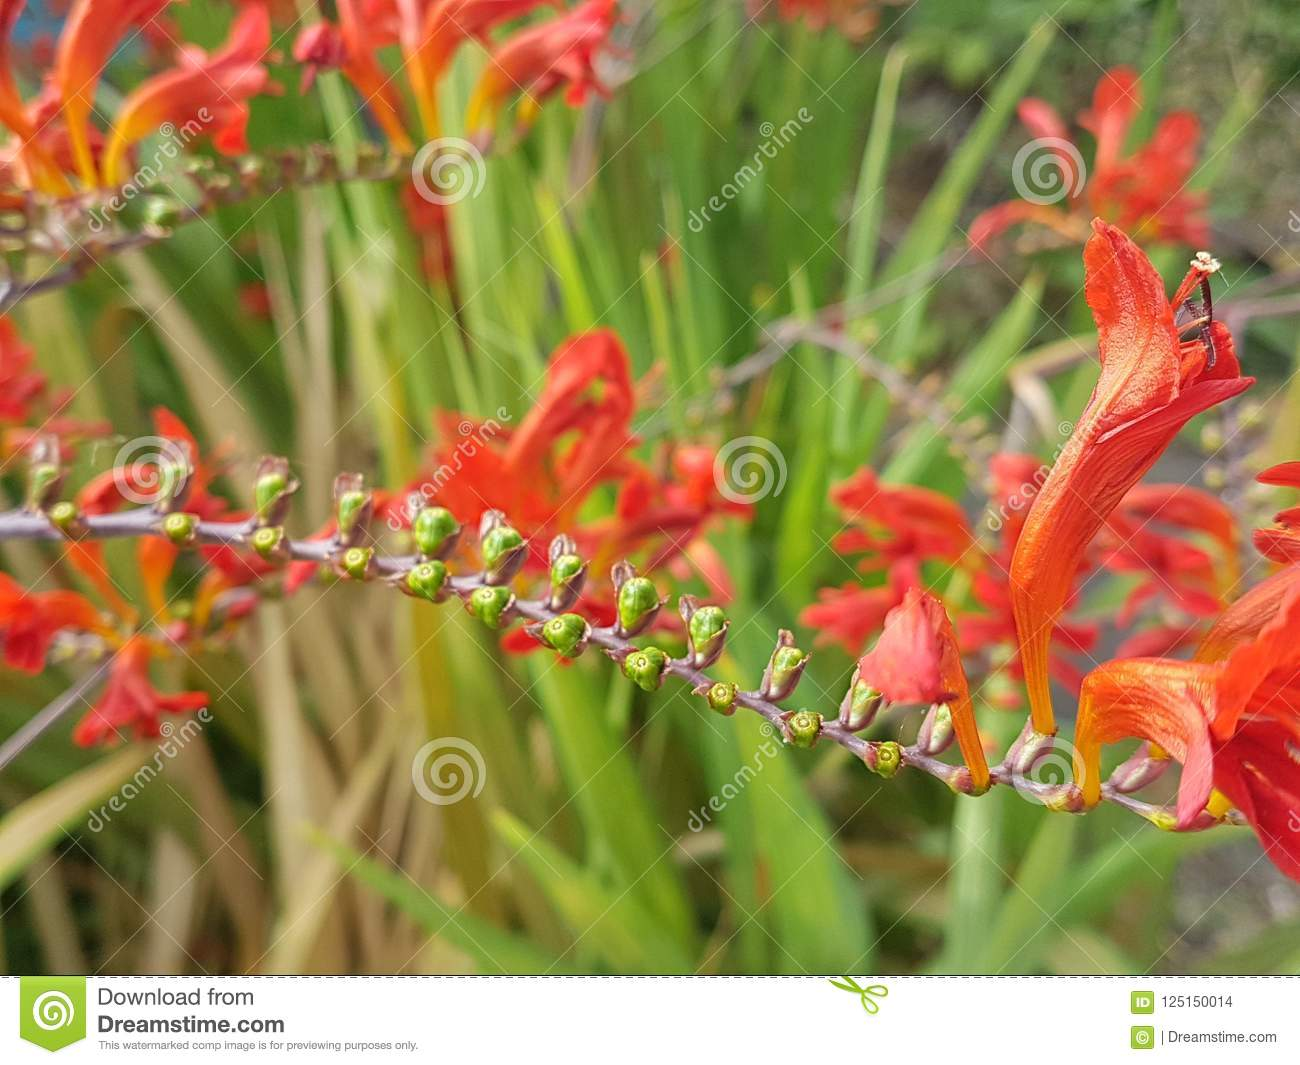 Plante Exotic Fleur Rouge Red Flower Stock Photo Image Of London